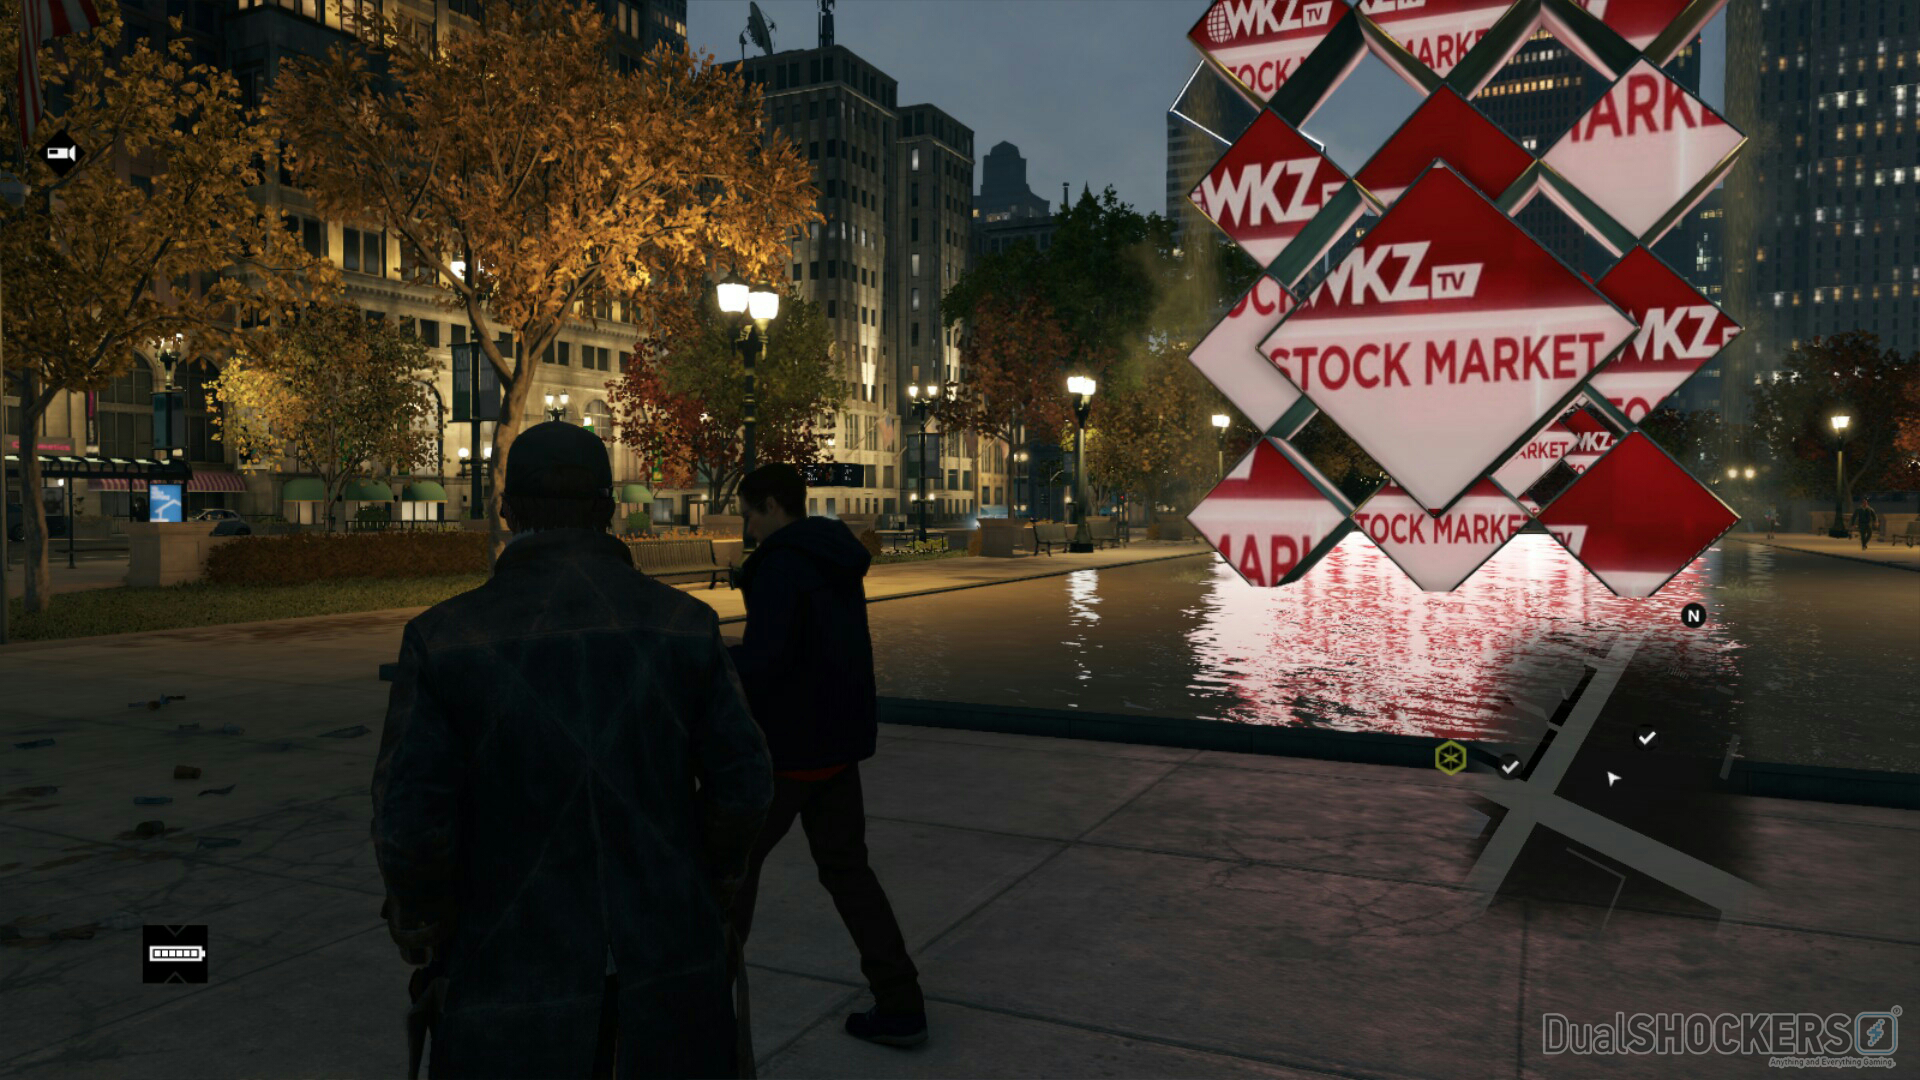 Watch Dogs High Resolution Games Hd Wallpaper For Mobile: Watch Dogs PS4 Beta Version Vs GTA V Screenshot Comparison